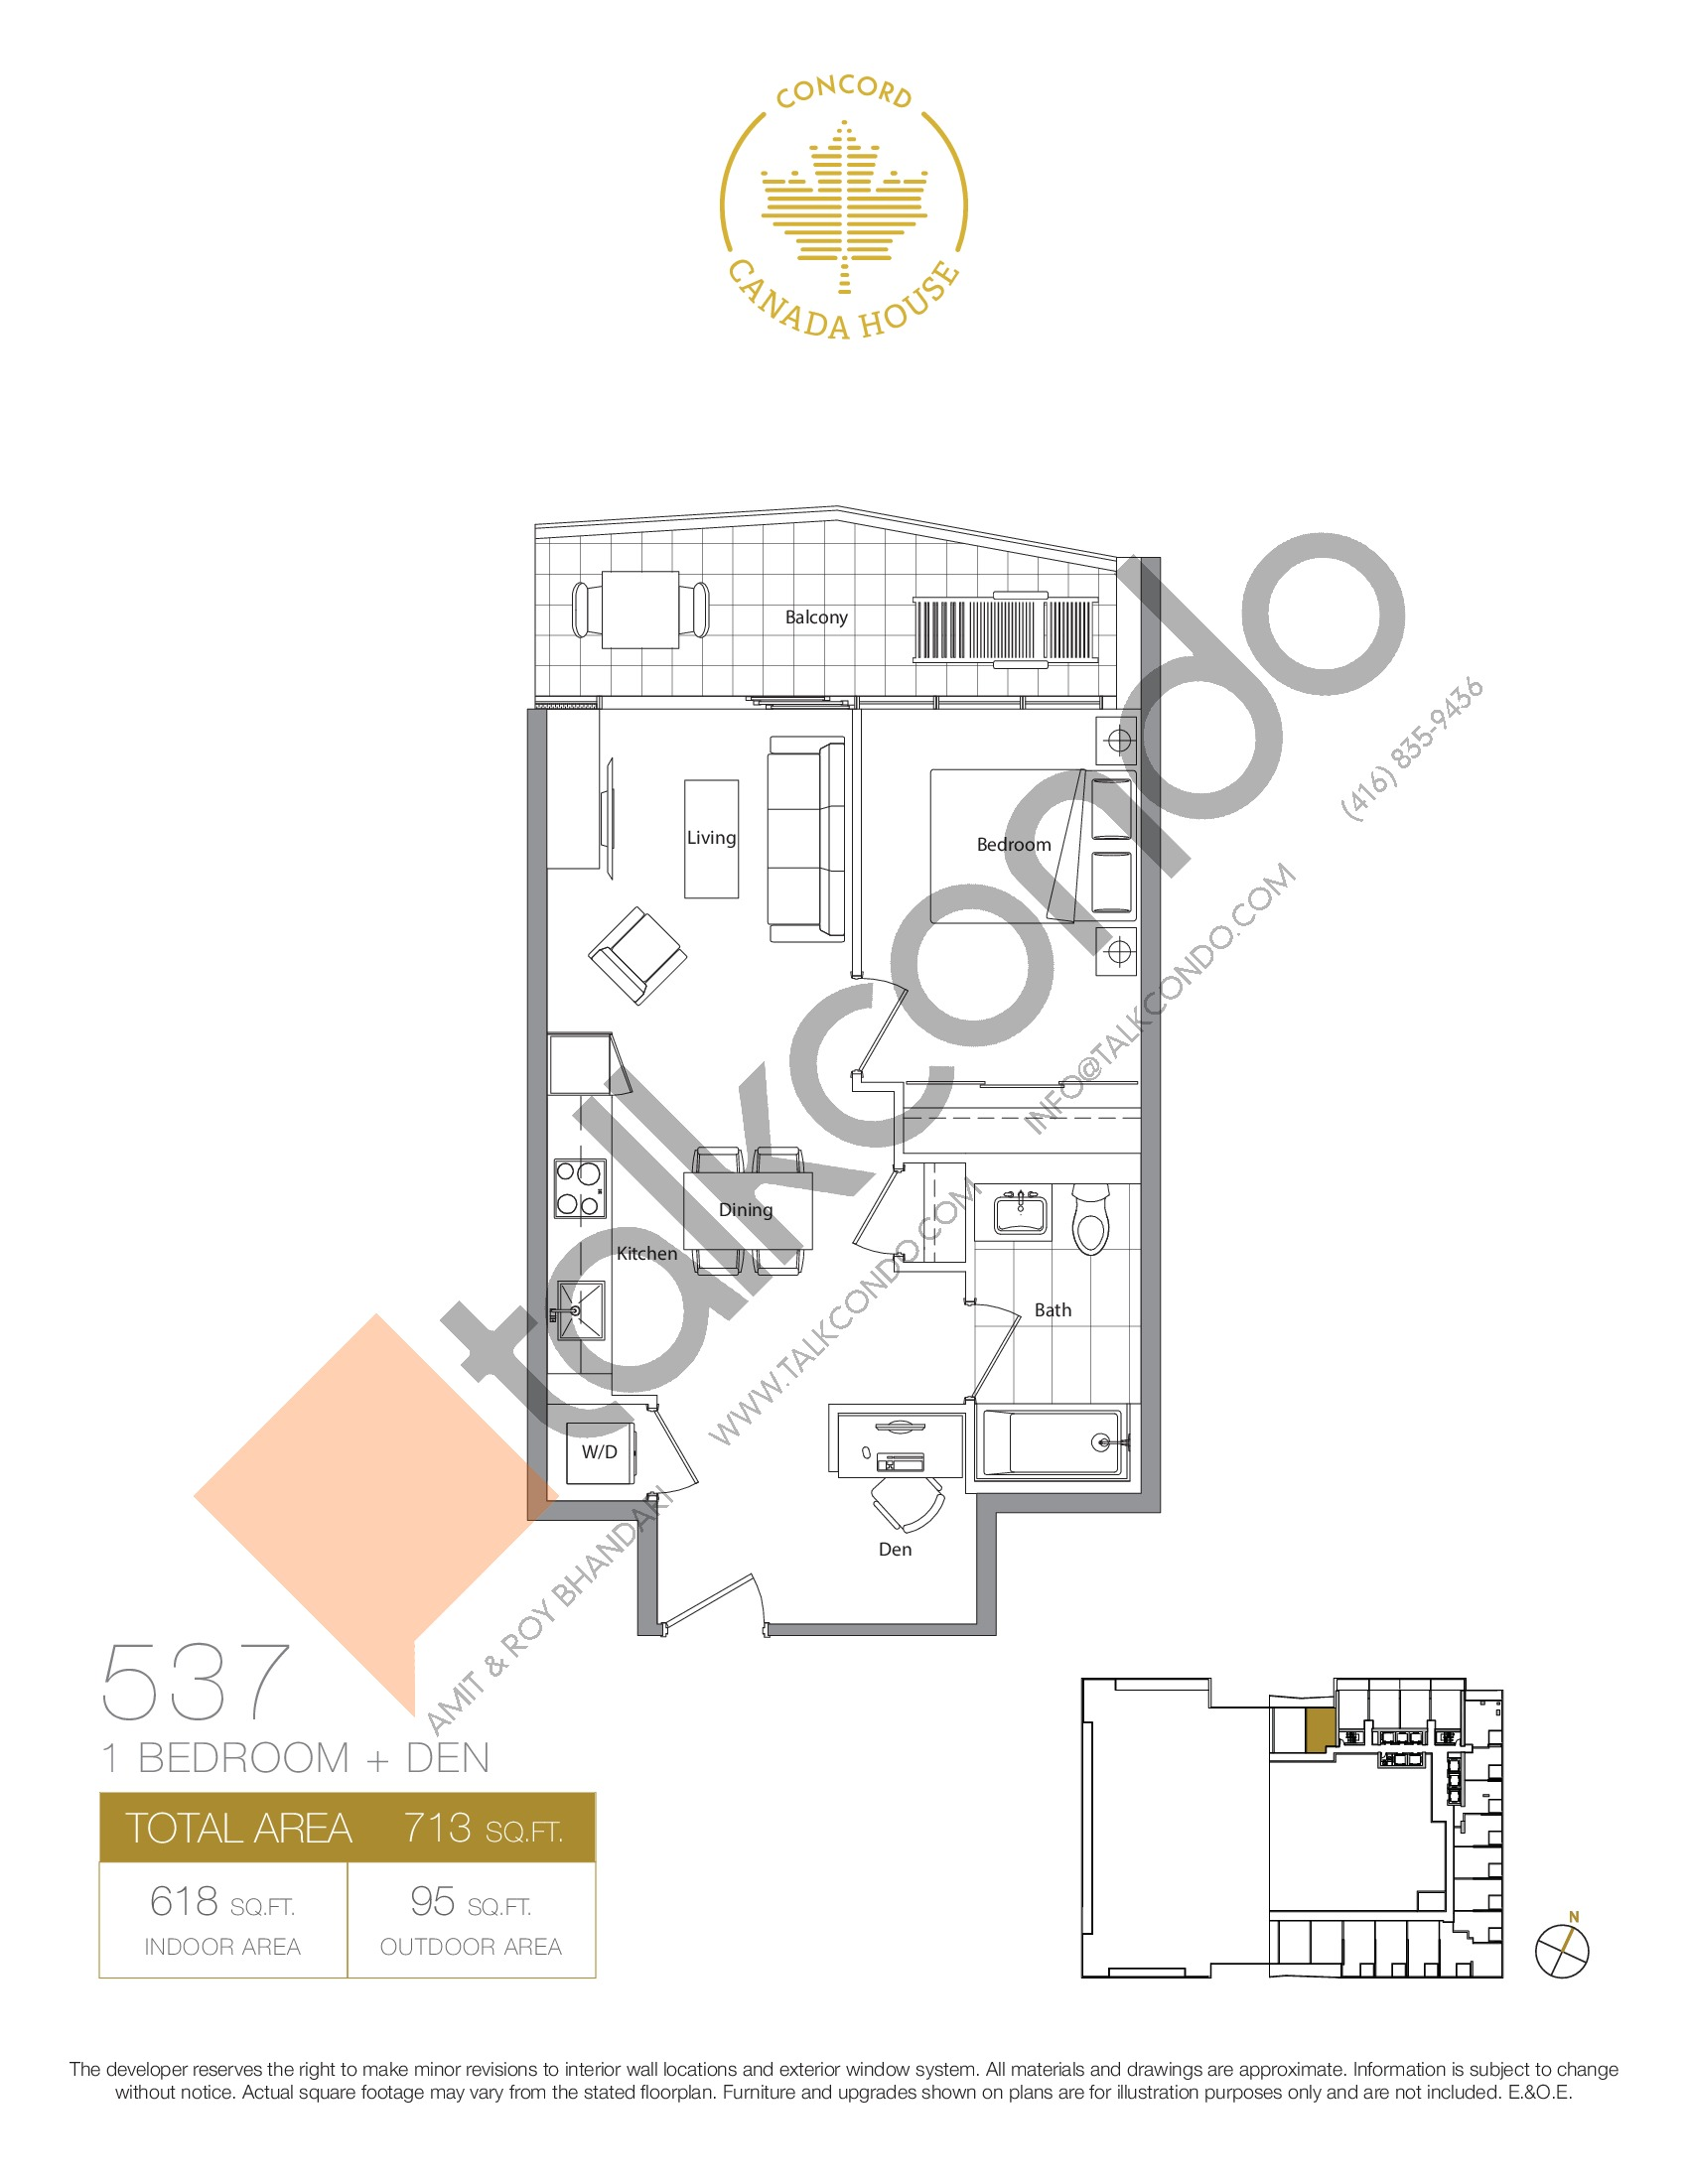 537 - East Tower Floor Plan at Concord Canada House Condos - 618 sq.ft